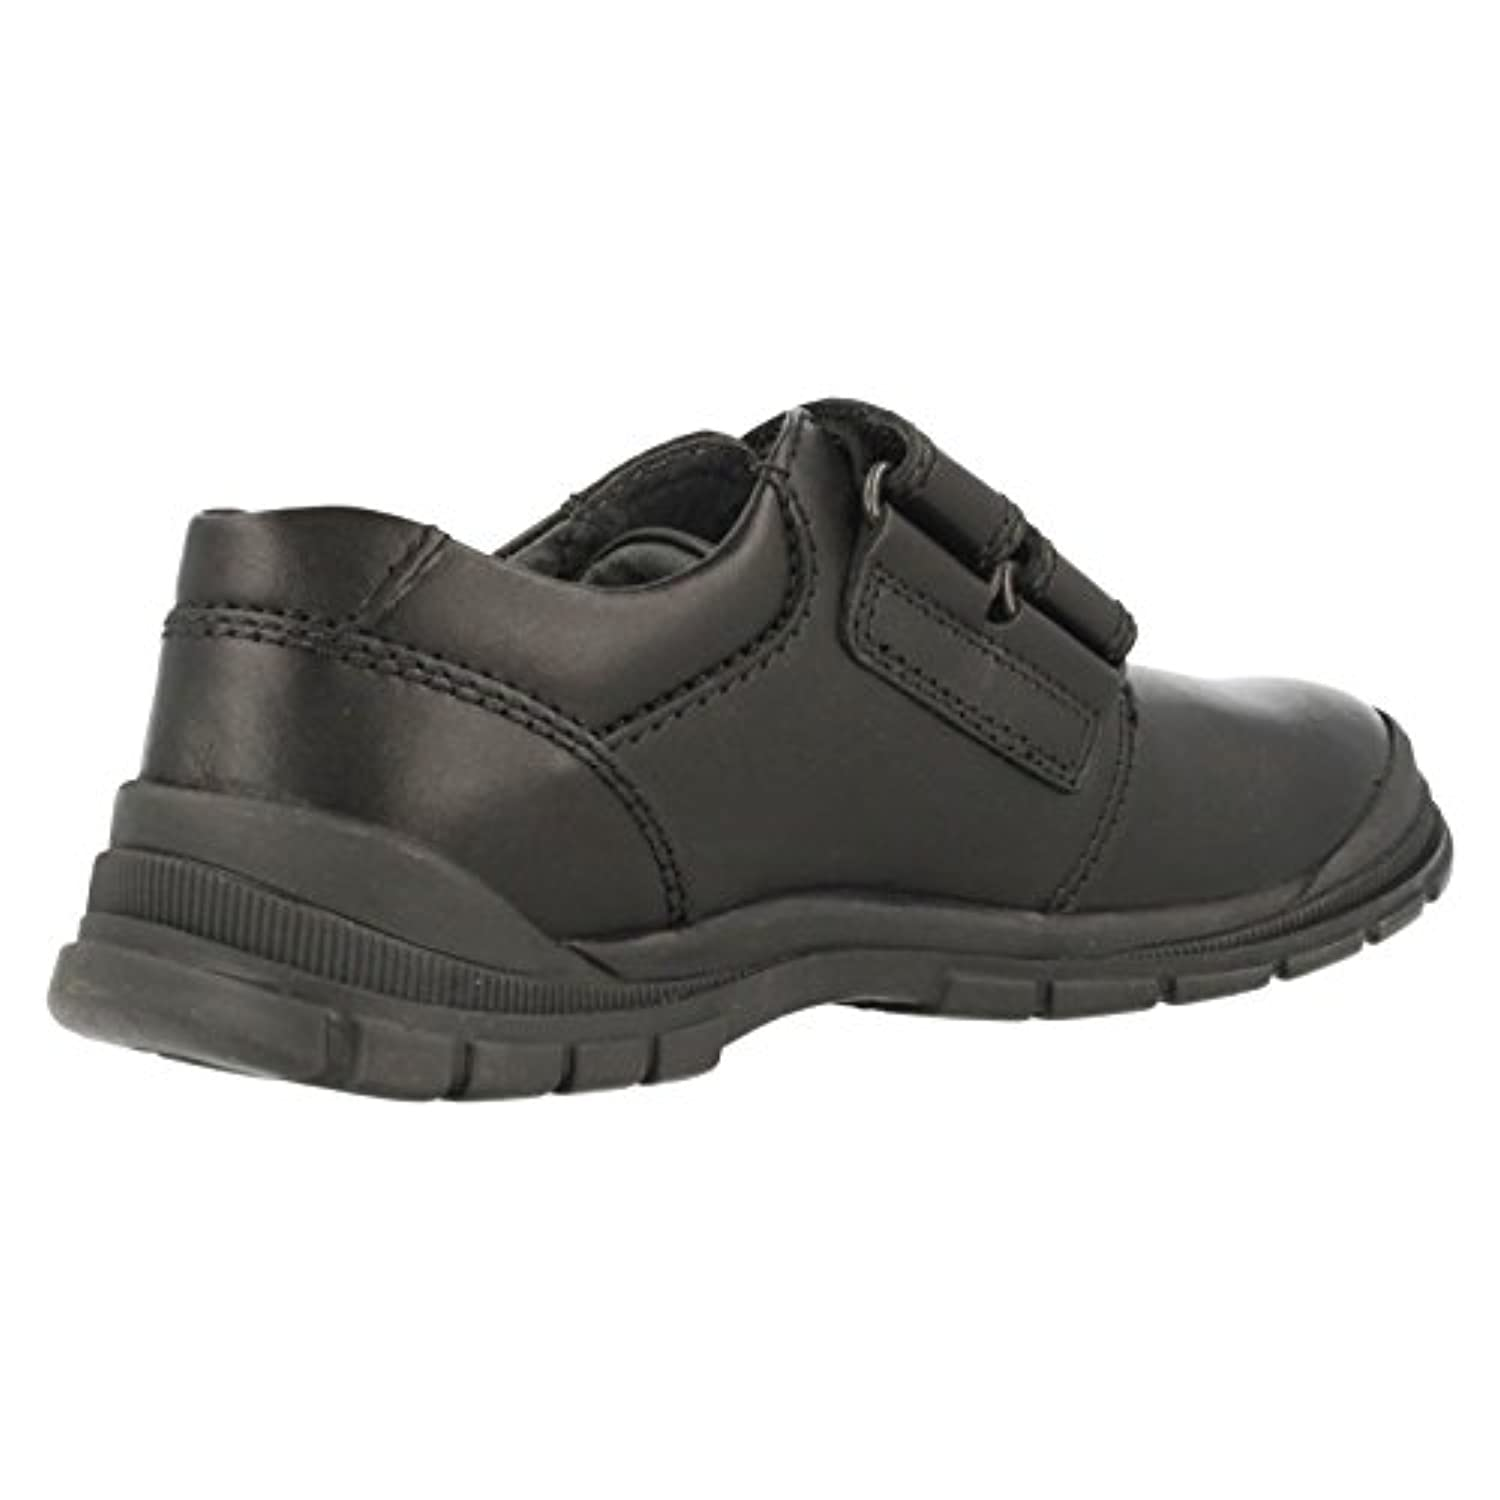 Boys Startrite Scuff Resistant School Shoes Engineer Black Leather Size 1H